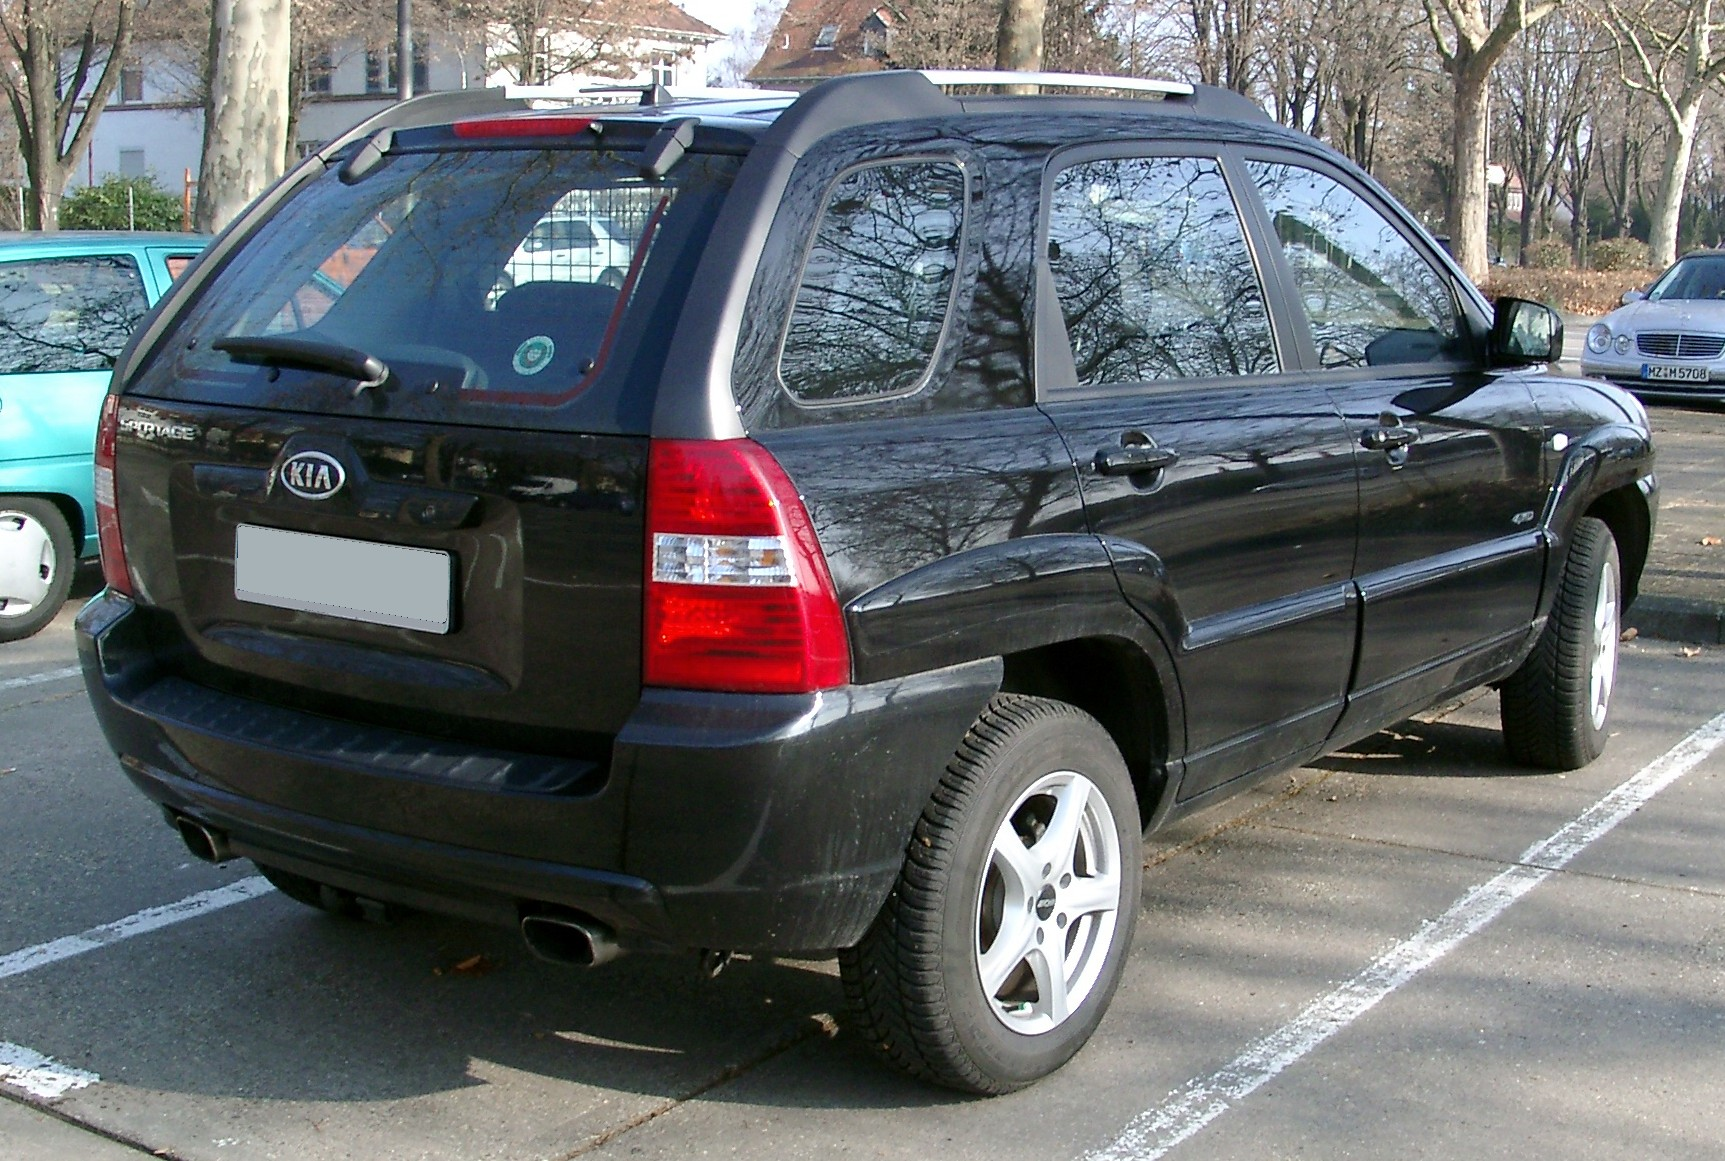 File:Kia Sportage II rear 20080213.jpg - Wikimedia Commons